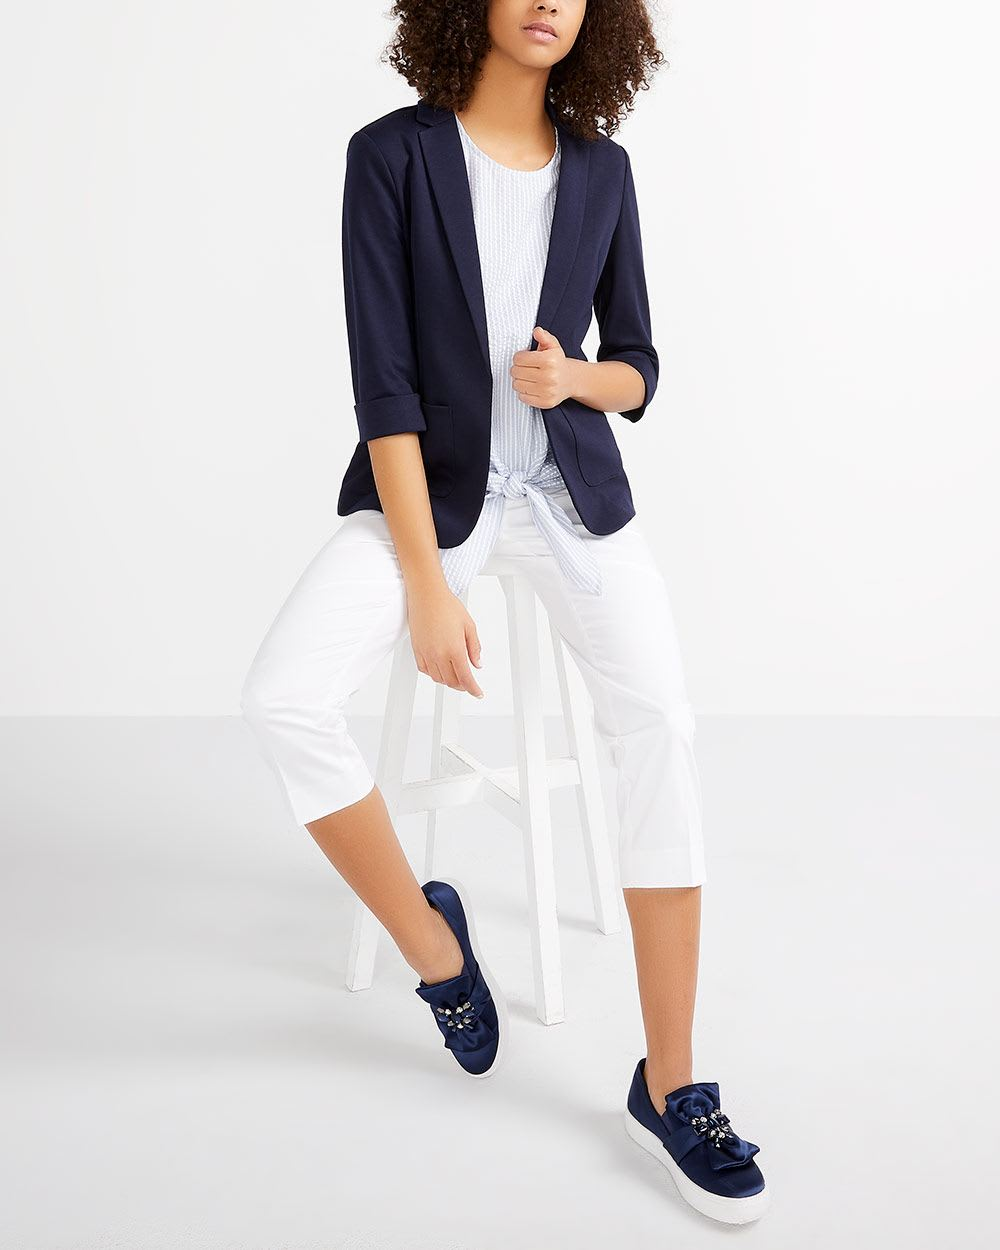 ¾ Sleeve Open Blazer